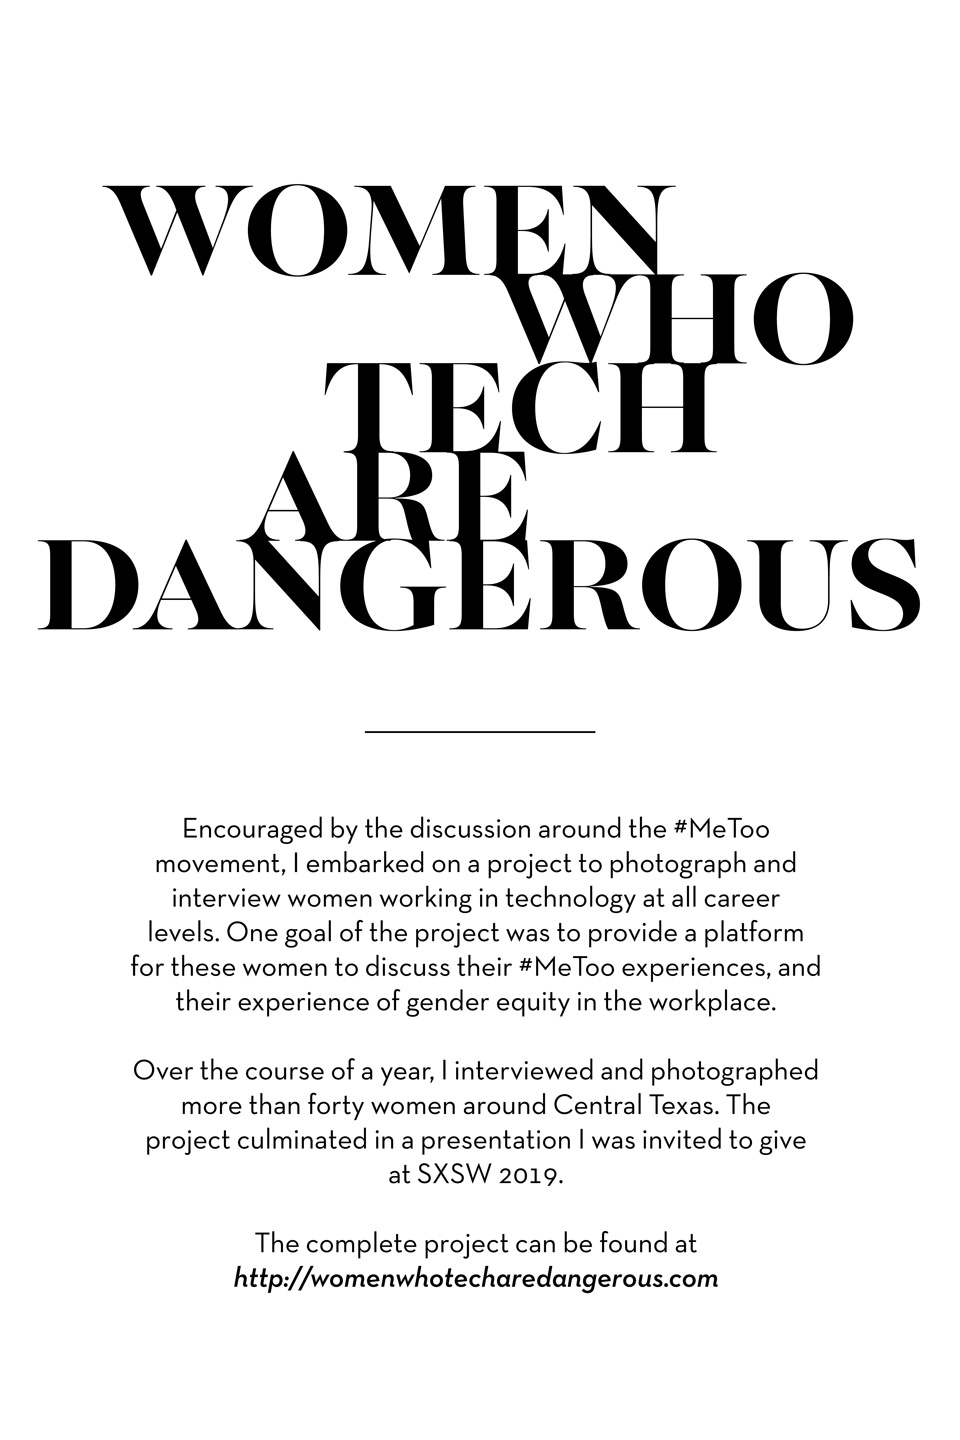 About: Text description of Women Who Tech Are Dangerous Project, by John Davidson